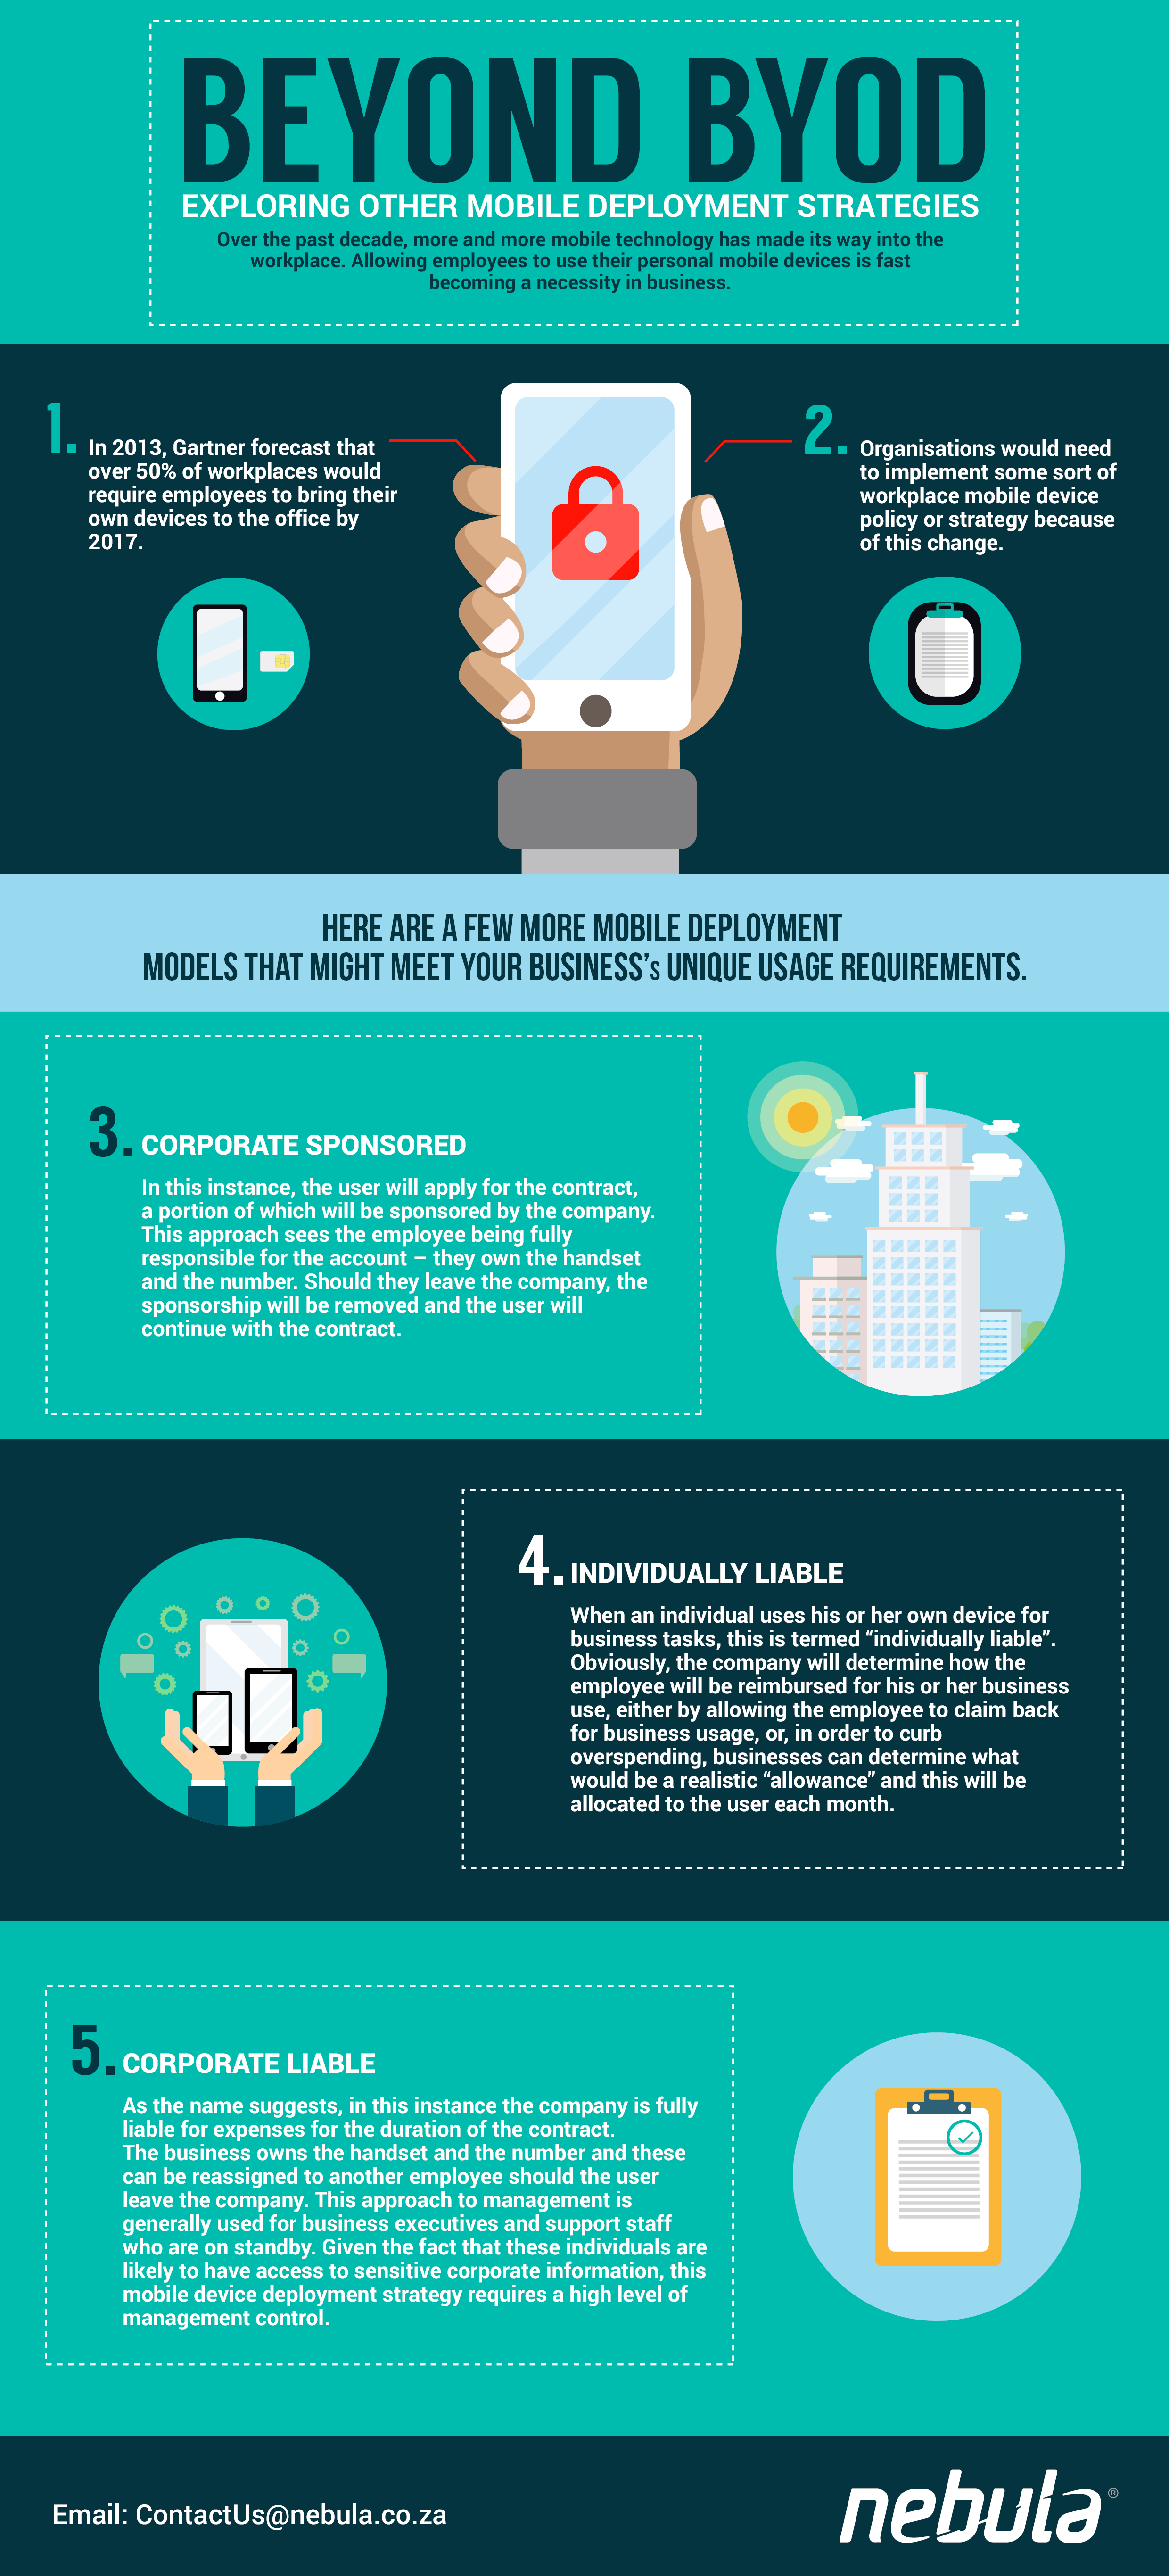 How to choose the right mobile device policy - INFOGRAPHIC